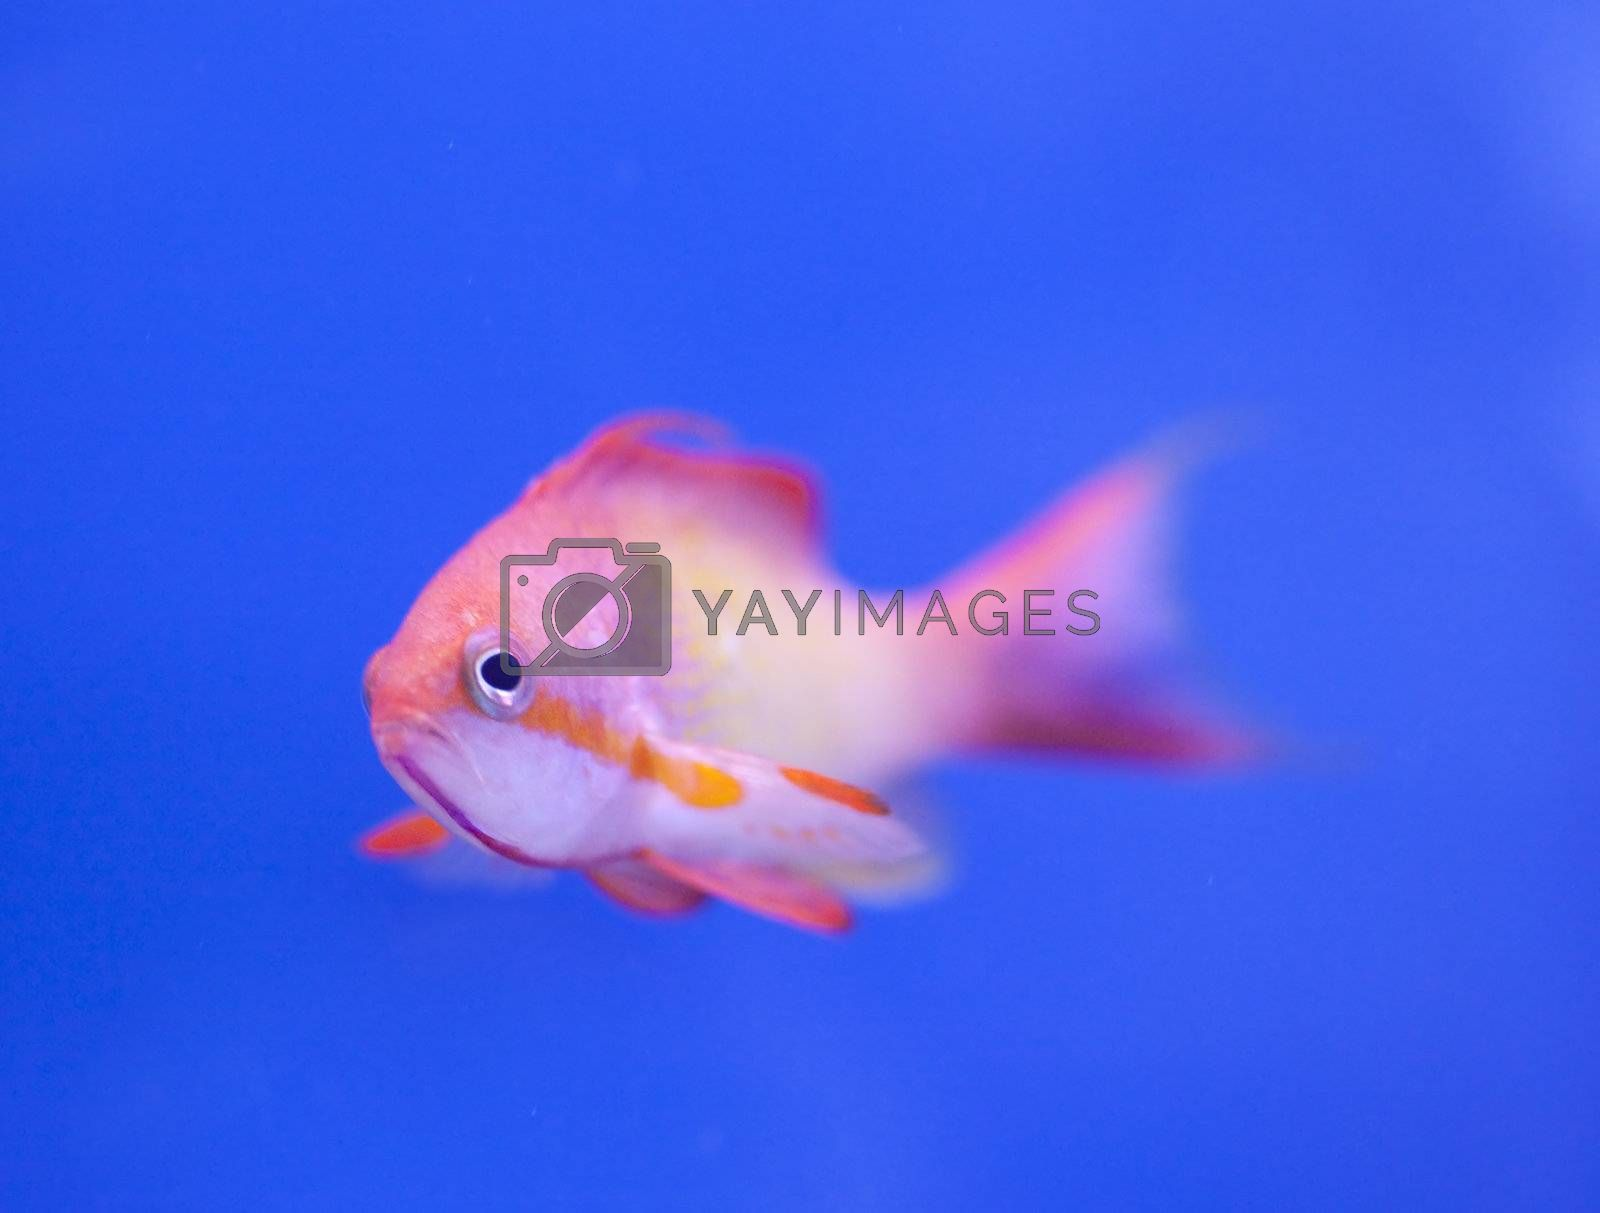 tropical animal in a salt water fish tank aquarium under water. Flash light can kill the animals so the photo was taken with available lights and reflectors